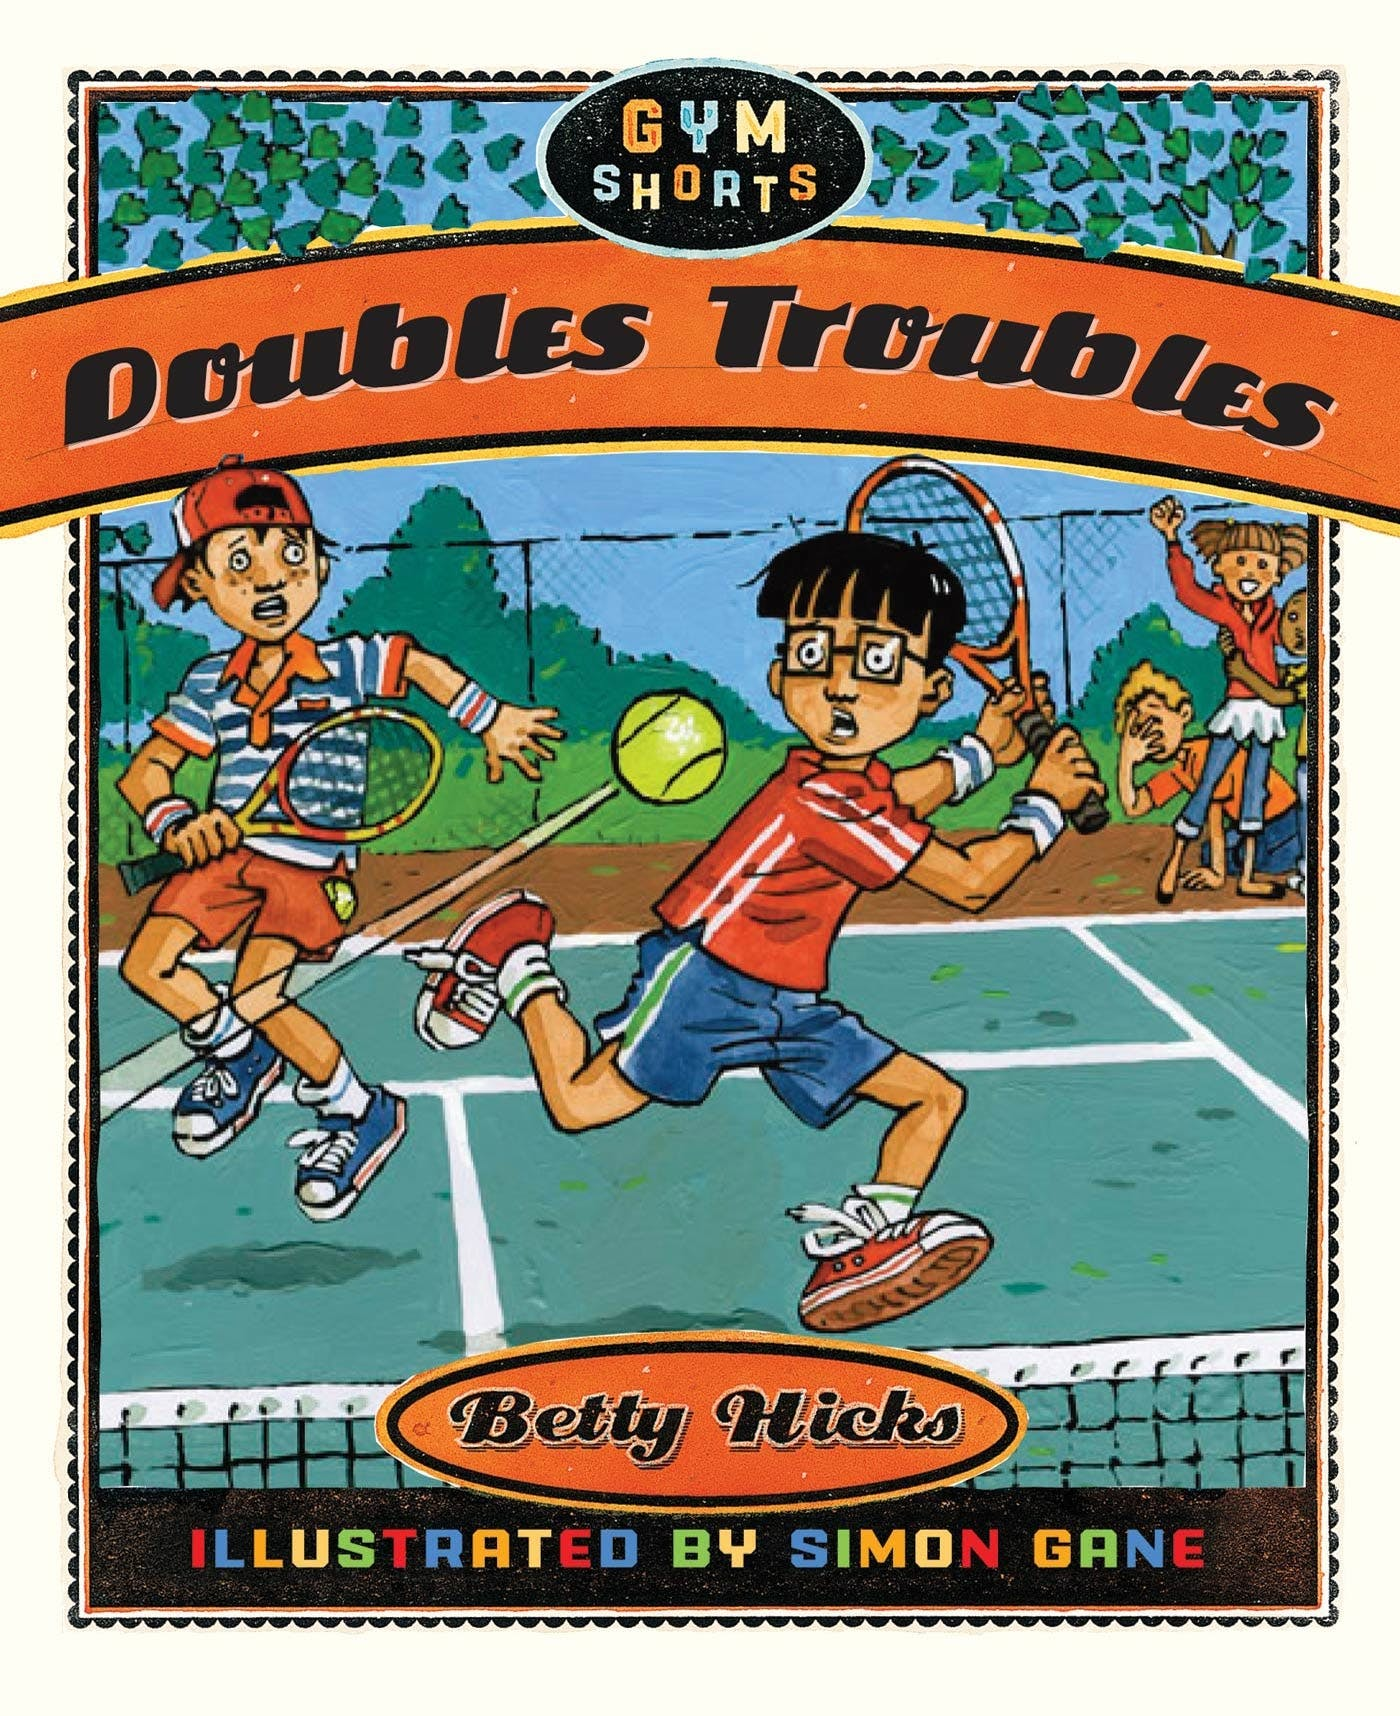 Image of Doubles Troubles